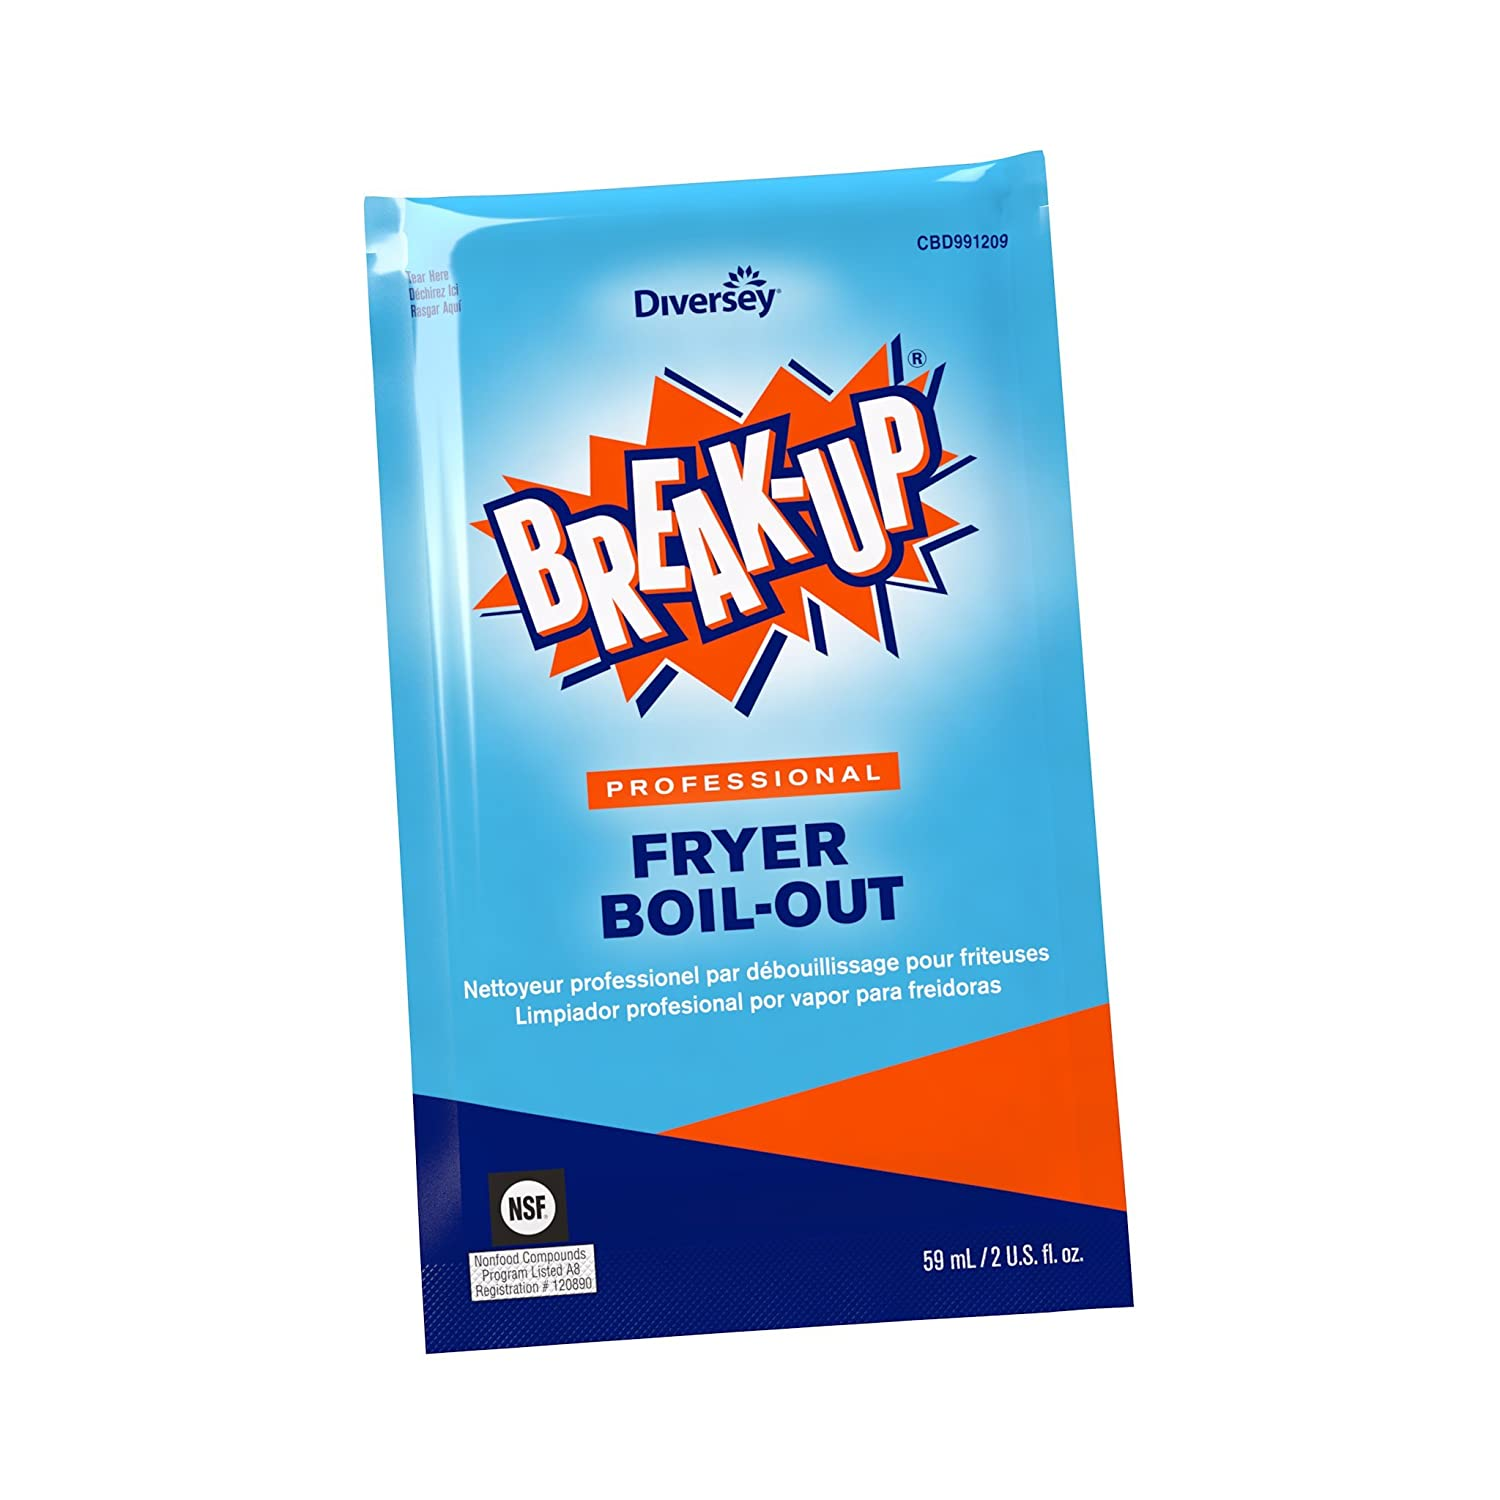 Diversey Break-Up Professional Fryer Boil-Out, 2 oz. Packet (36 Pack)